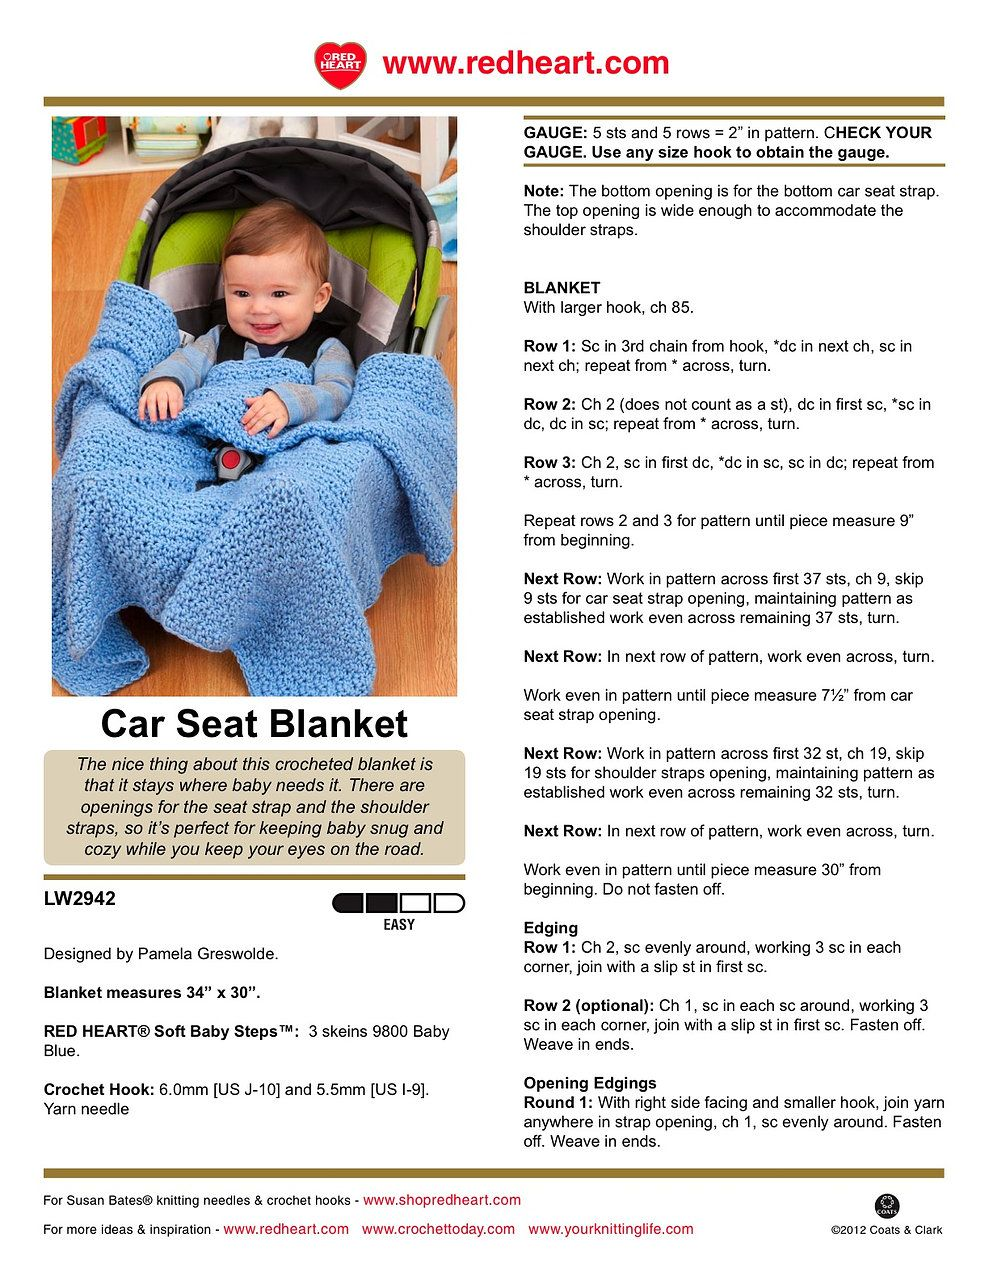 Car seat blanket crochet pattern crochet blankets pinterest baby car seat blanket free crochet pattern made with worsted weight yarn bankloansurffo Gallery